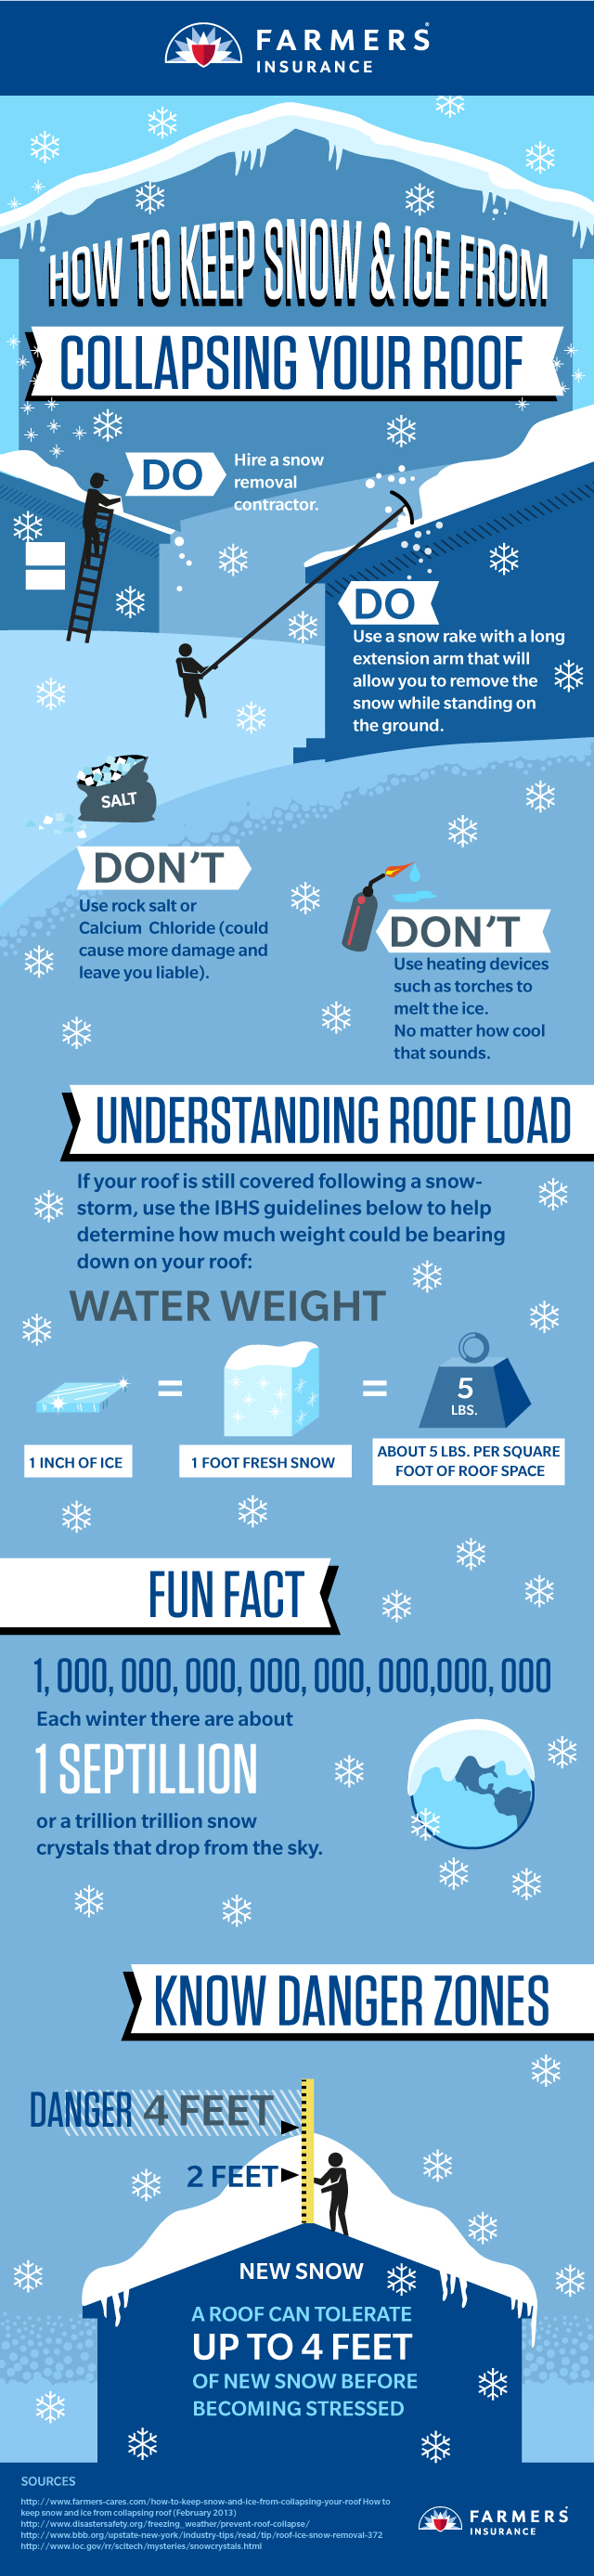 Protecting Your Roof In The Winter Farmers Insurance Farmers